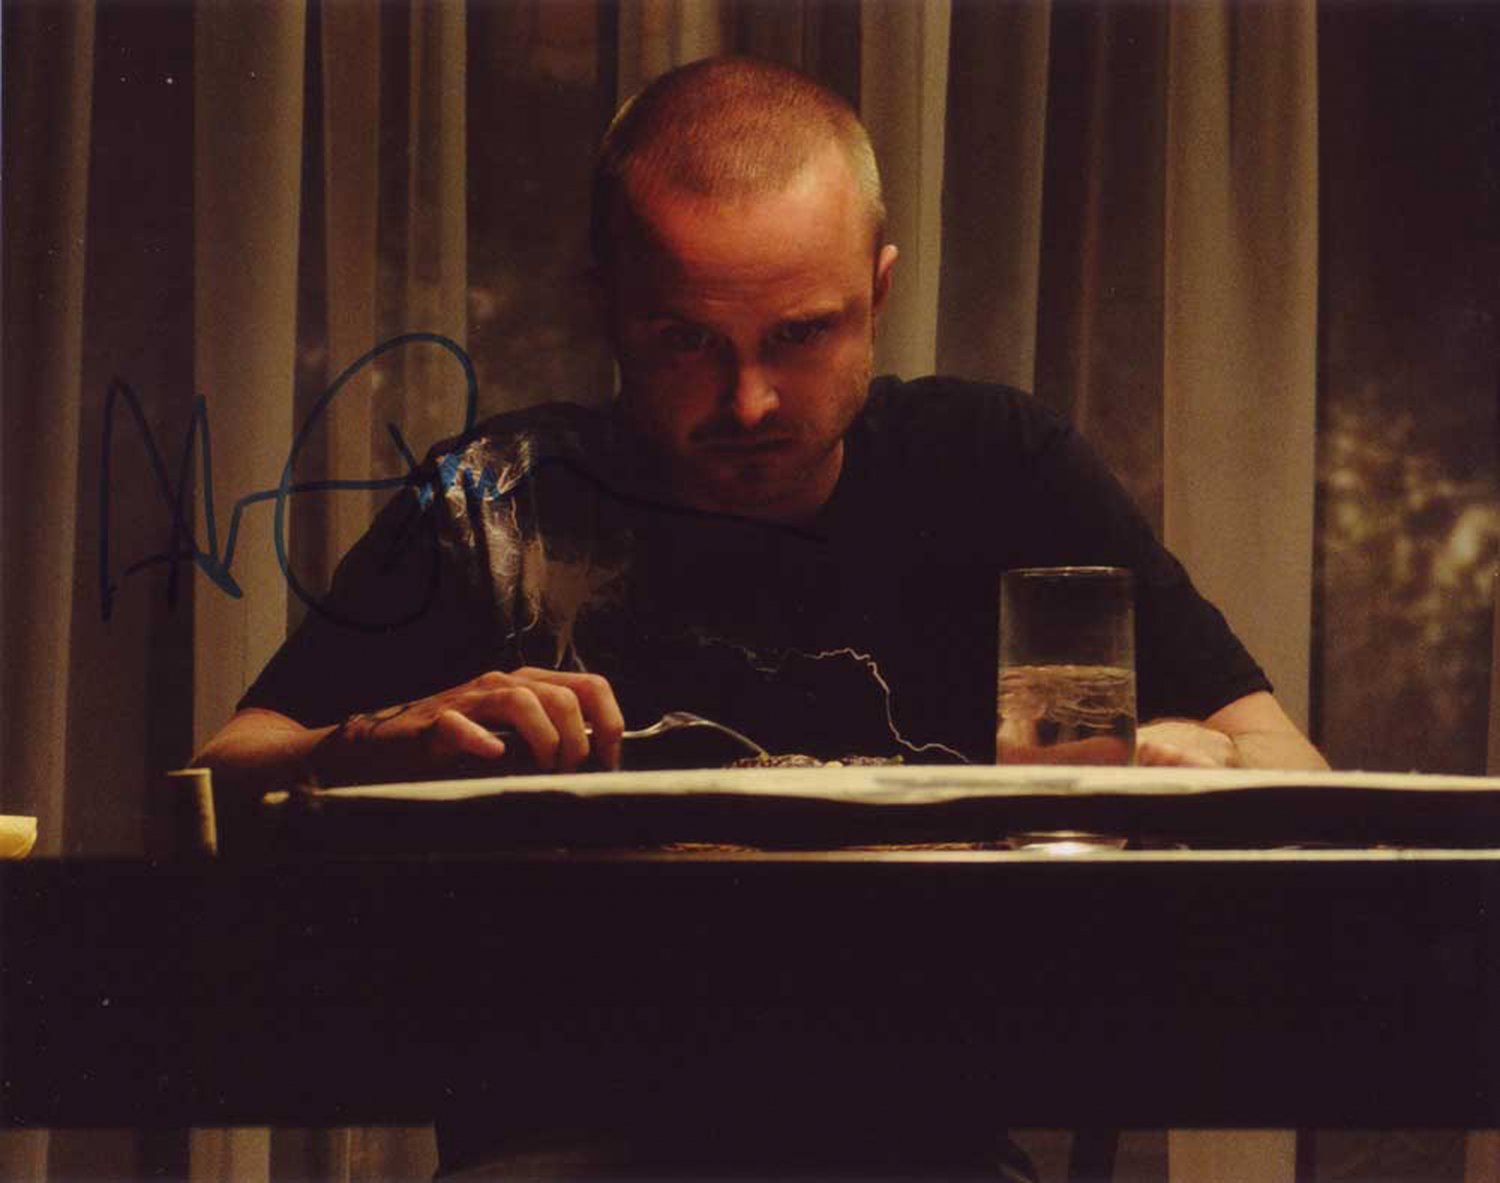 """Aaron Paul (Breaking Bad) 8 x 10"""" Autographed Photo (Reprint 000095) ideal for Birthdays & X-mas"""